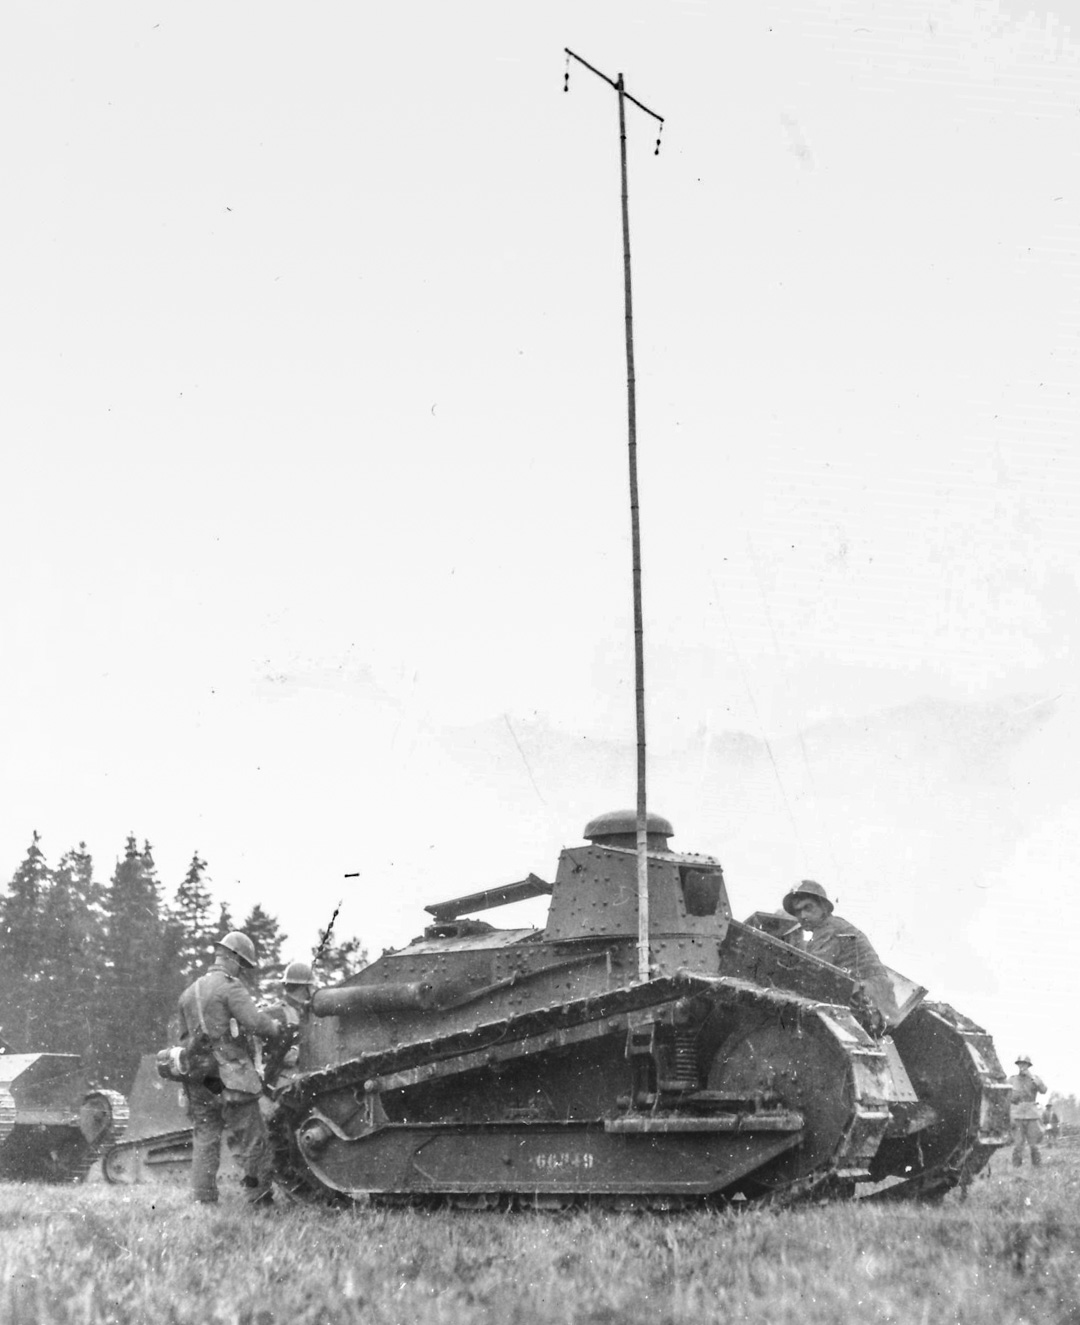 Renault FT tank with radio antenna of bamboo. Note that the gun is unmounted.